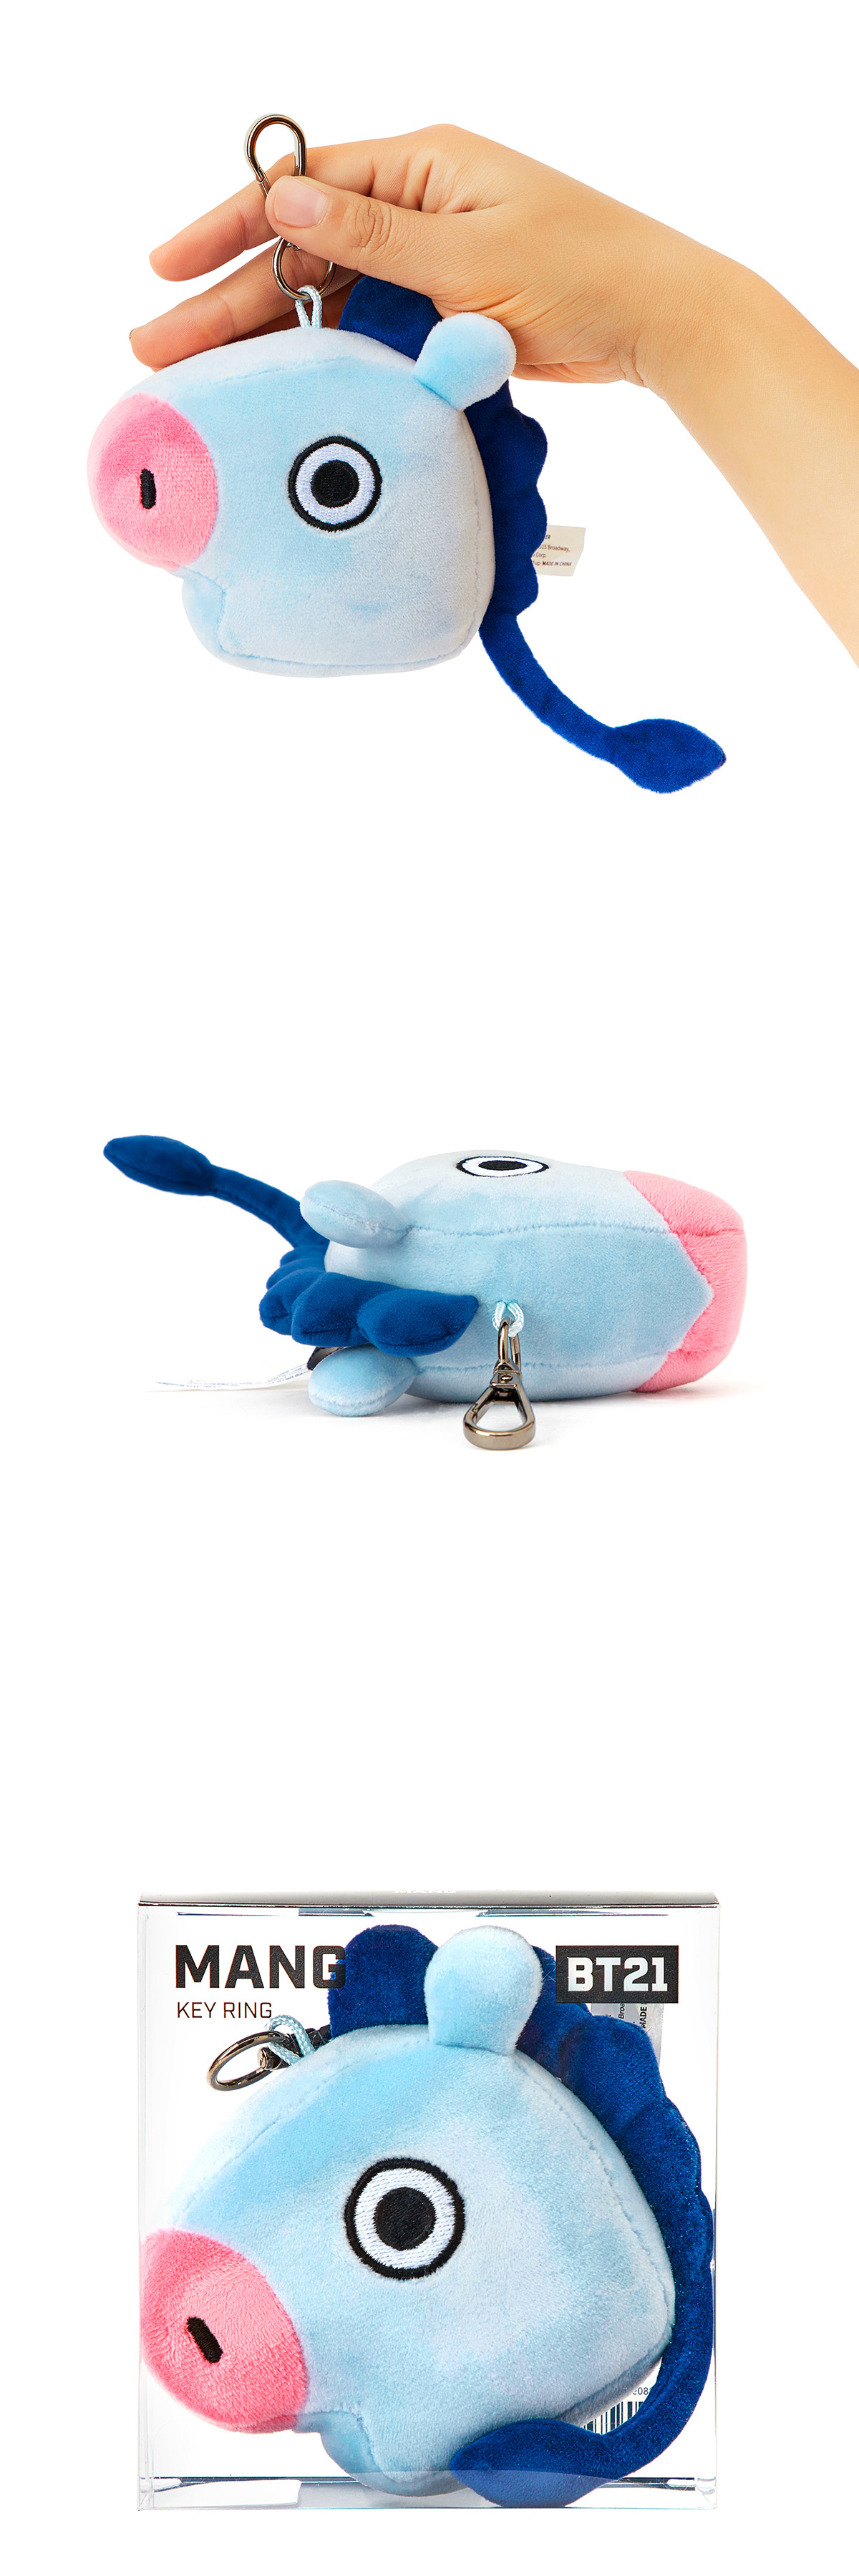 bt21_facedollkeyring.jpg